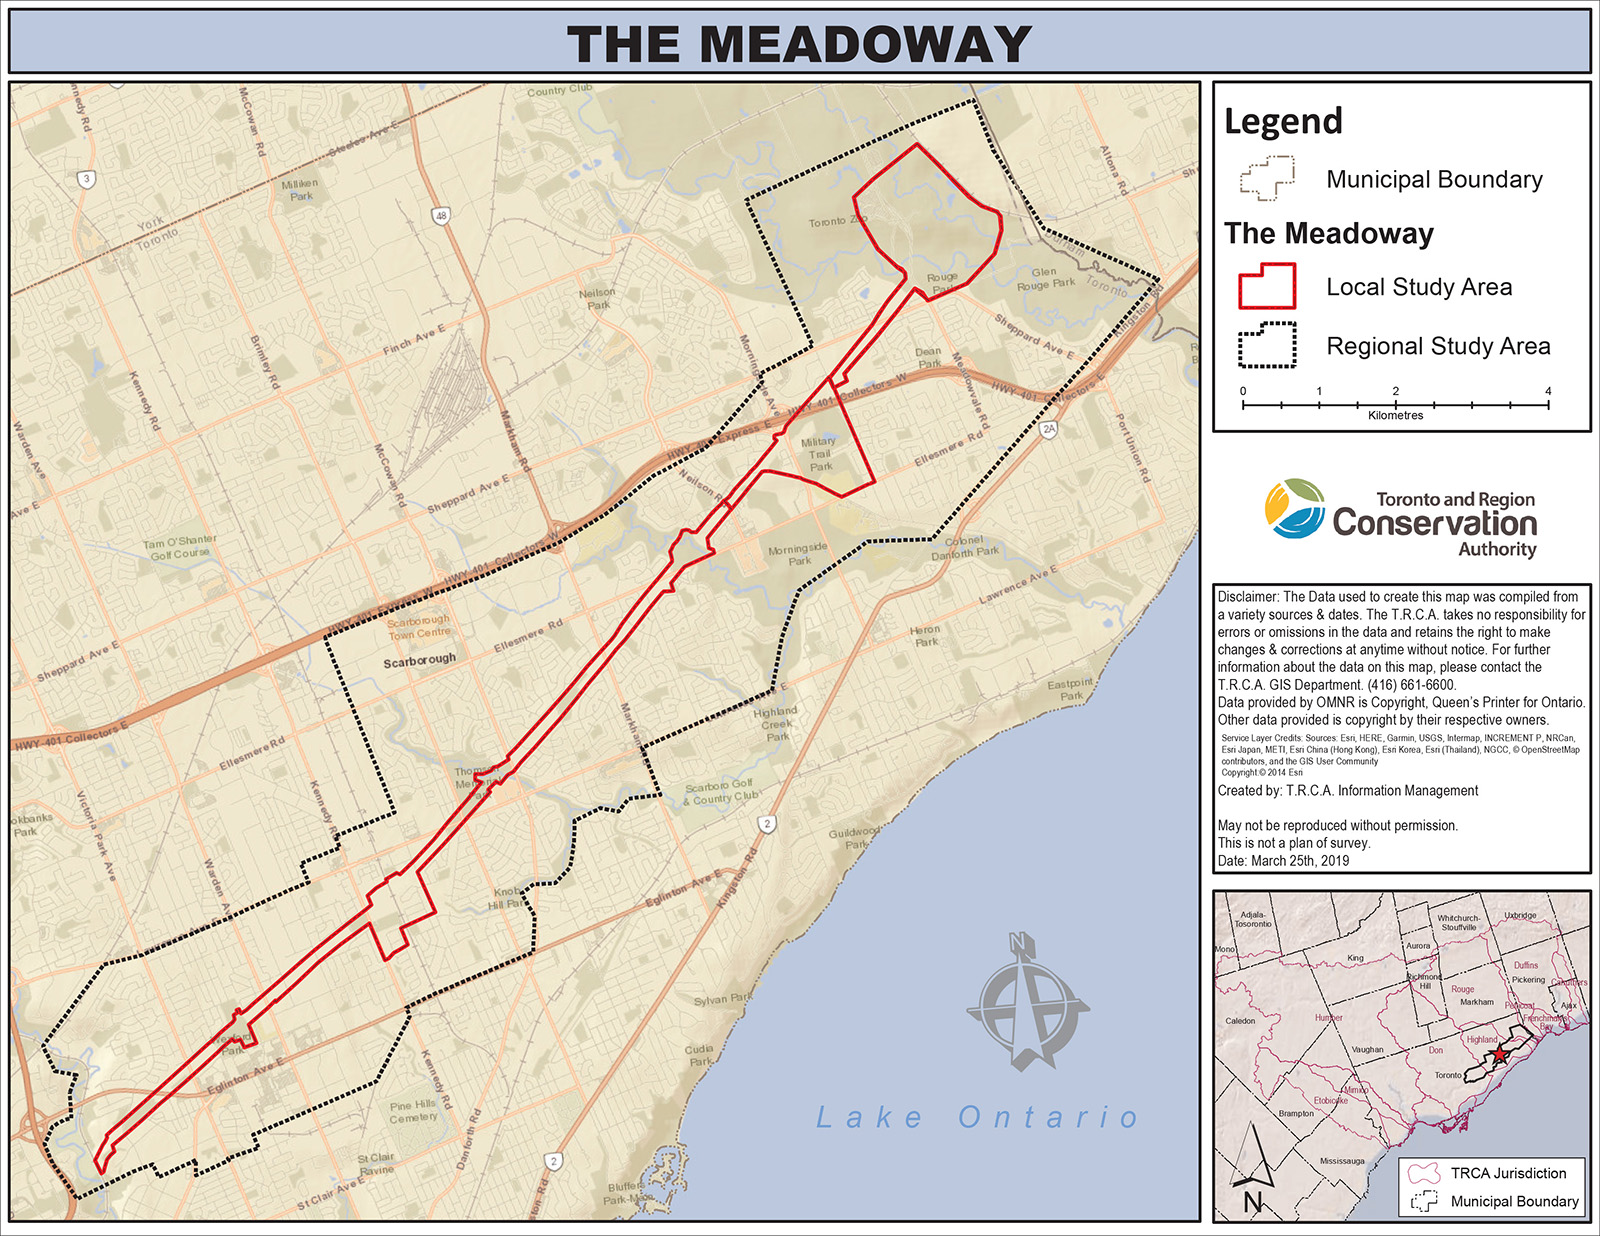 The Meadoway study area map